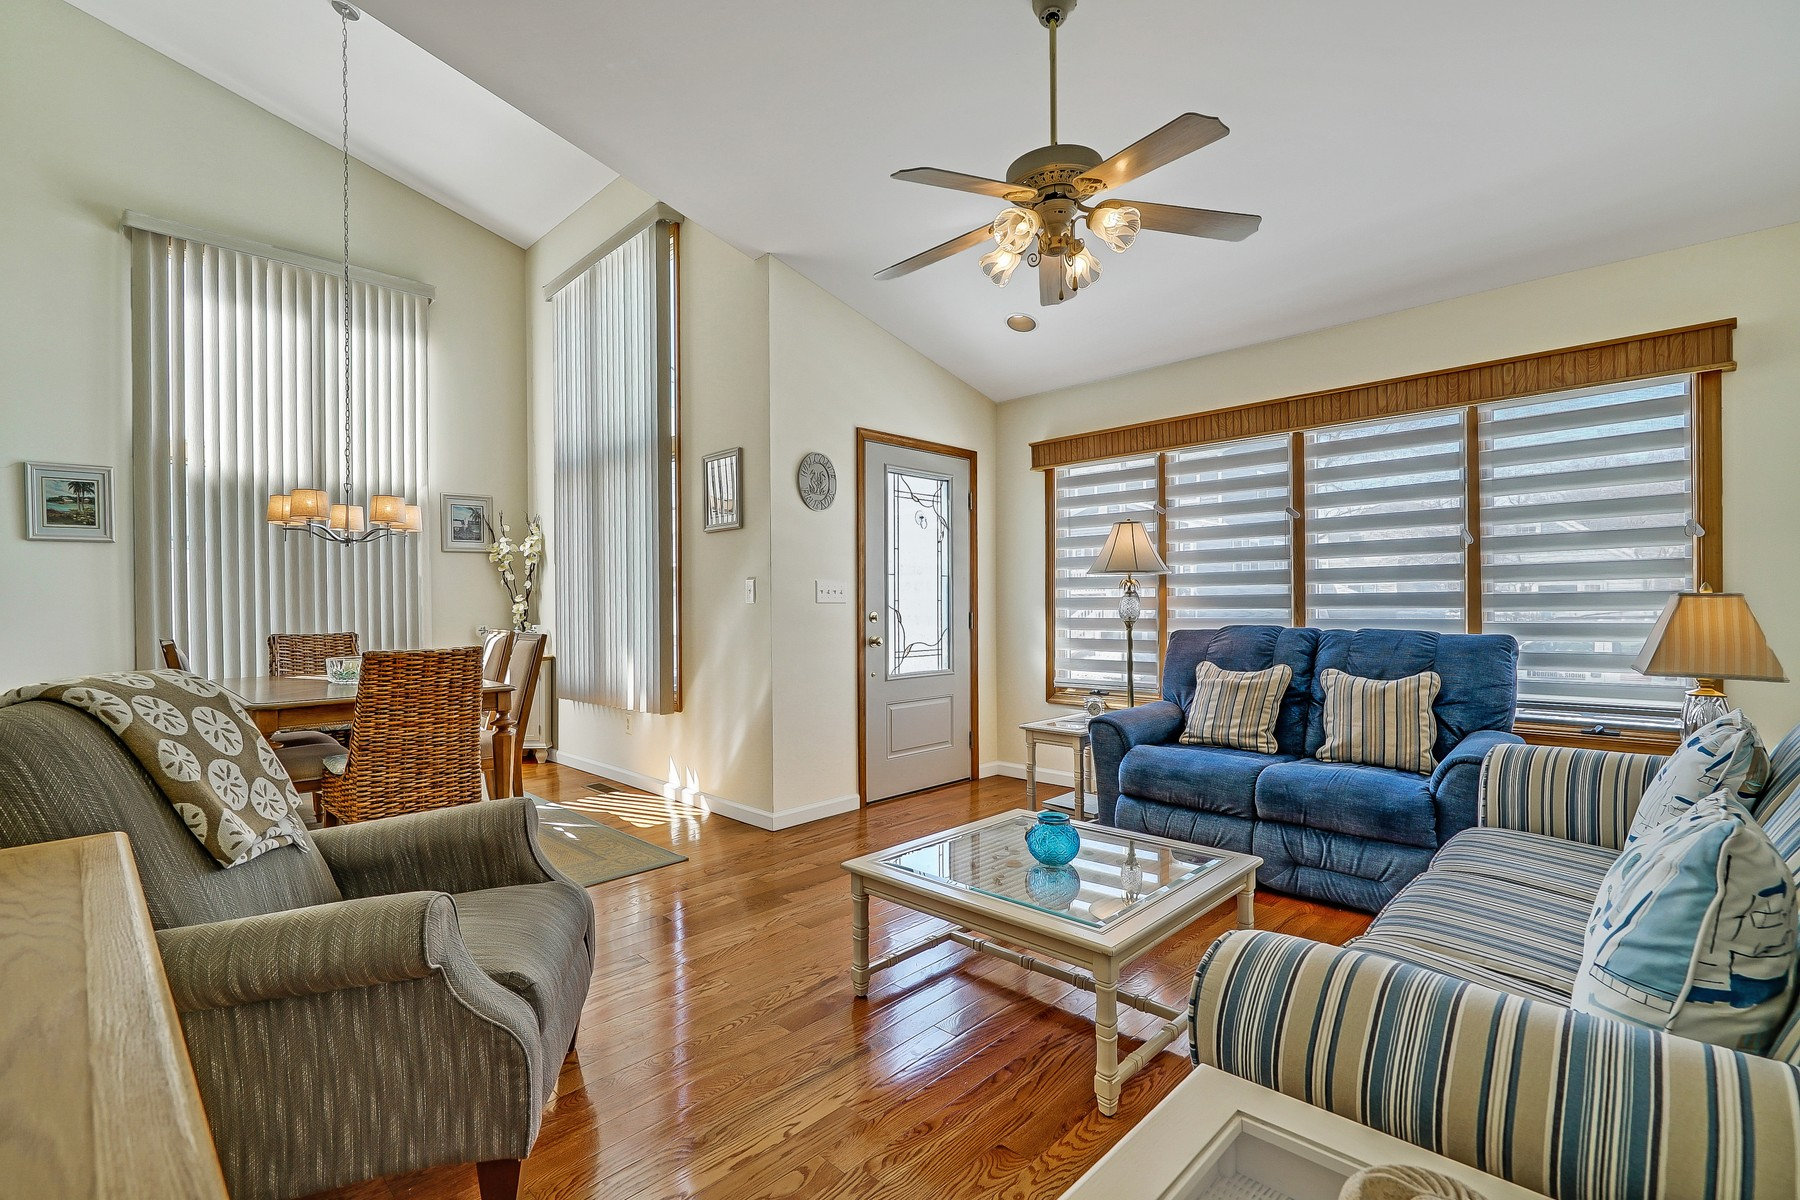 Single Family Home for Sale at Tastefully Decorated Custom Home 10 Lockwood Avenue Manasquan, New Jersey 08736 United States